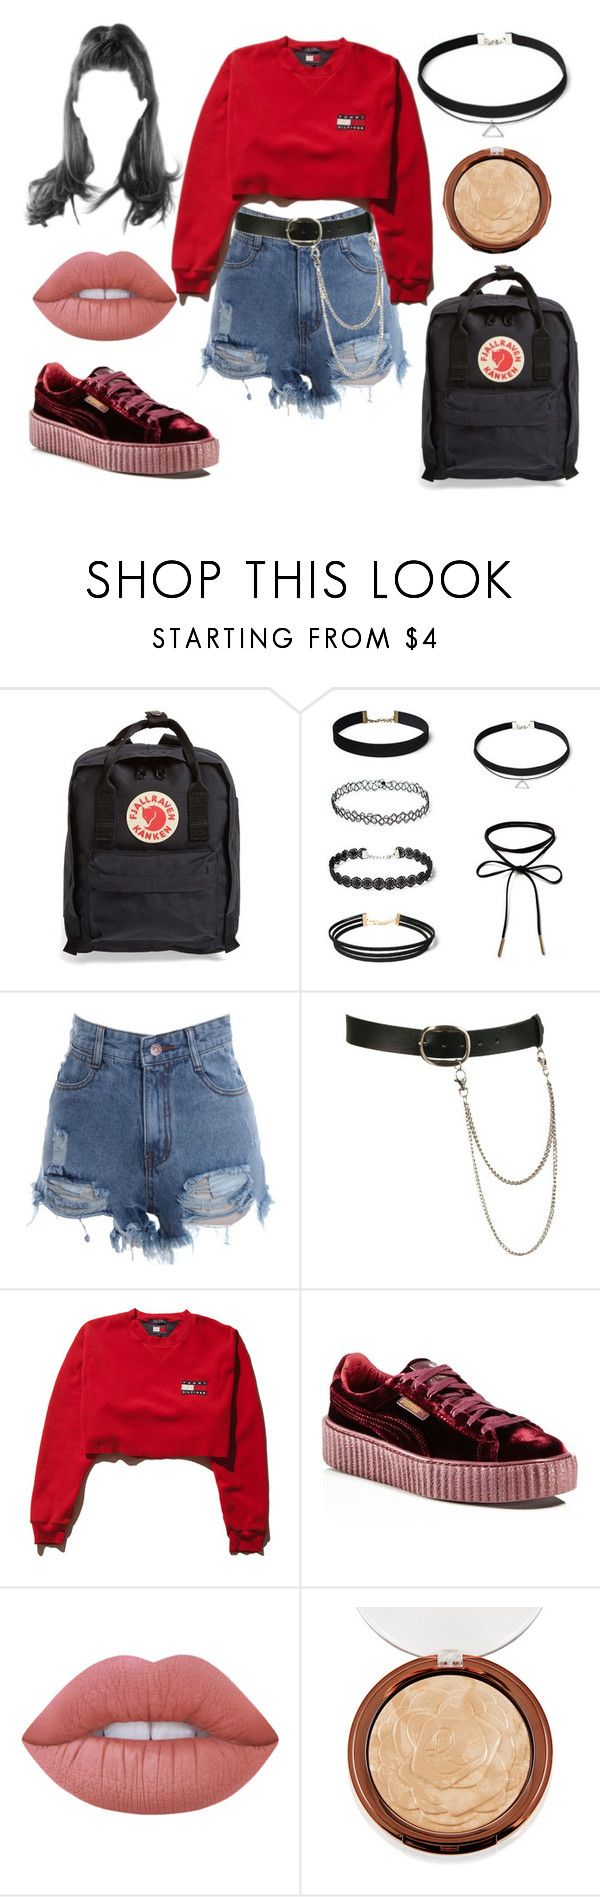 """""""Untitled #2162"""" by inocorbe ❤ liked on Polyvore featuring Fjällräven, Wet Seal, Puma and Lime Crime"""